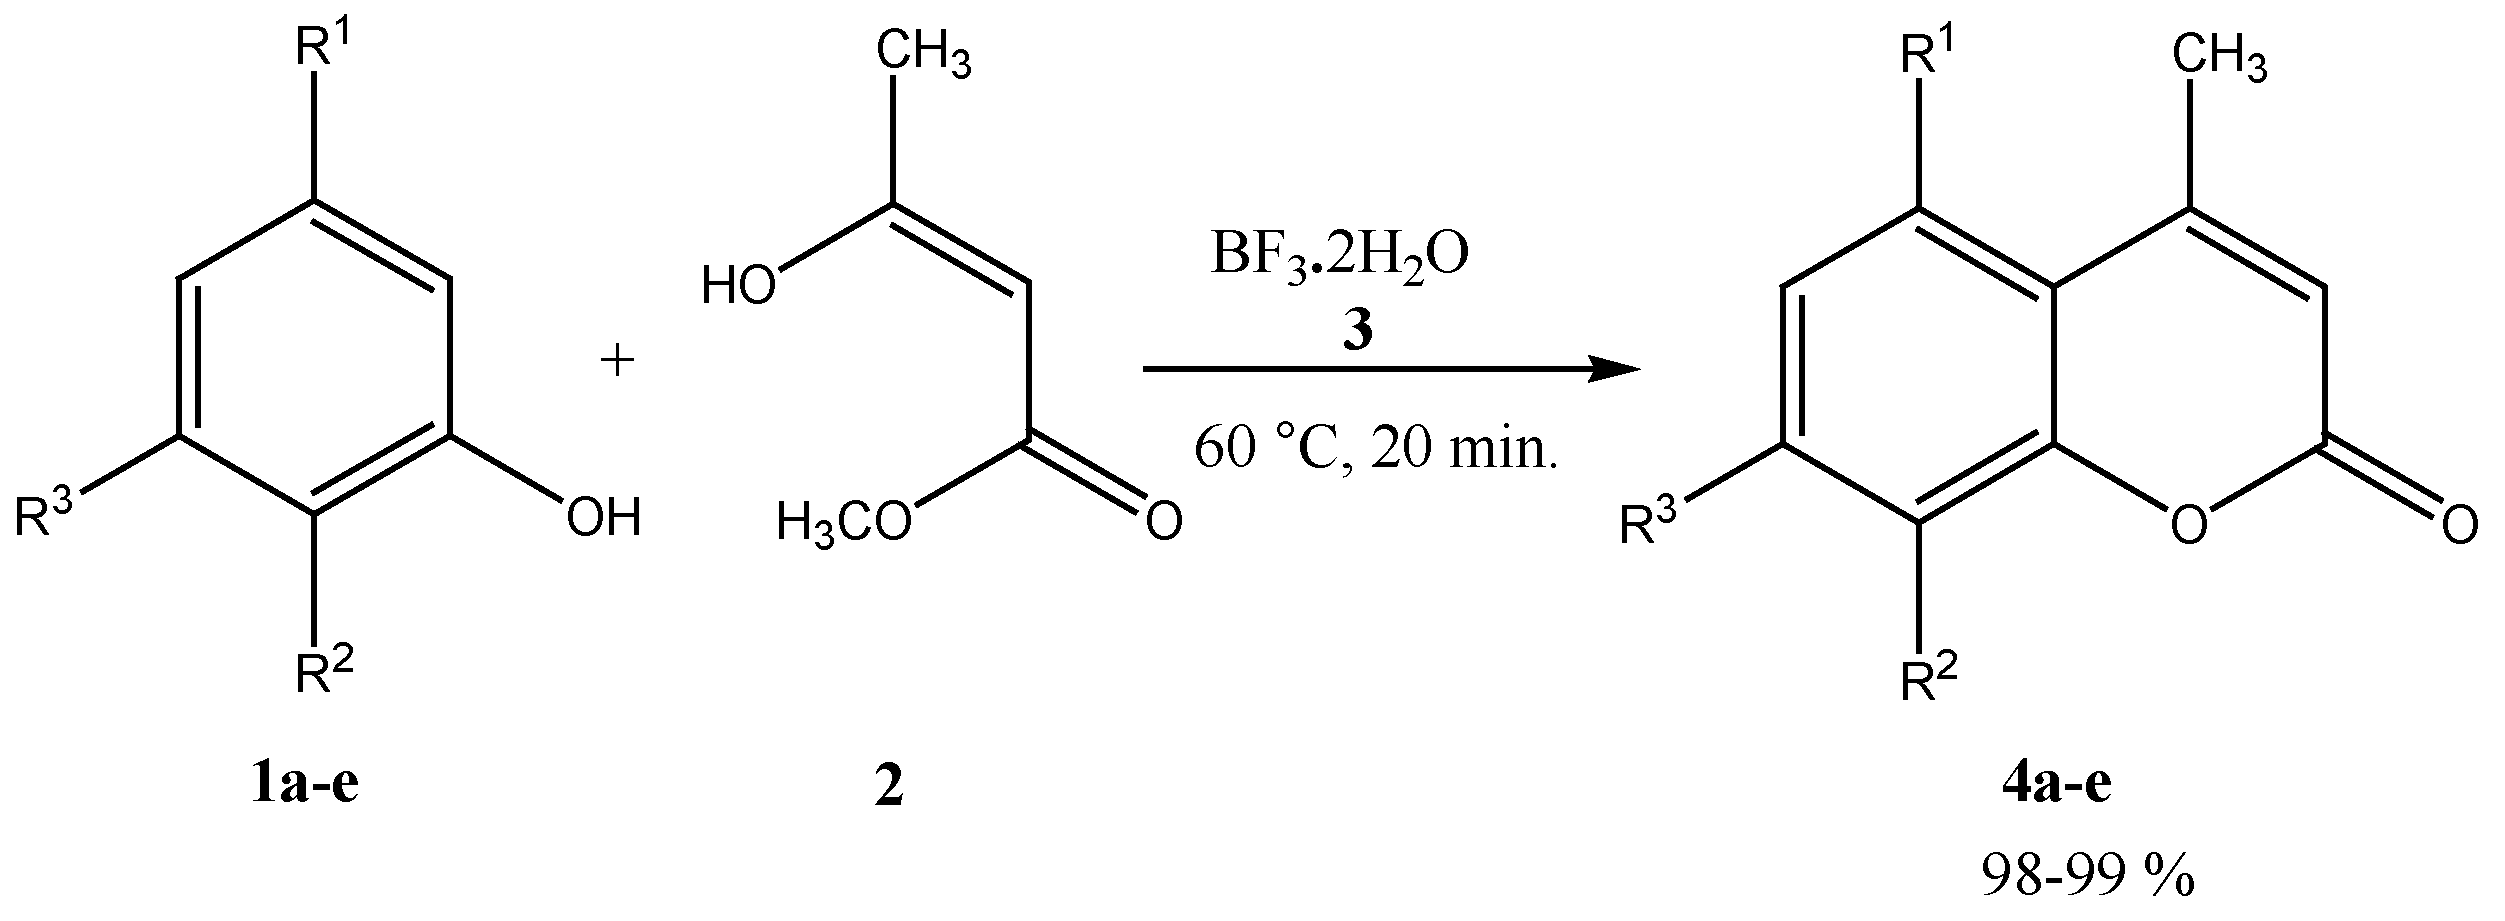 Boron Trifluoride At Room Temperature